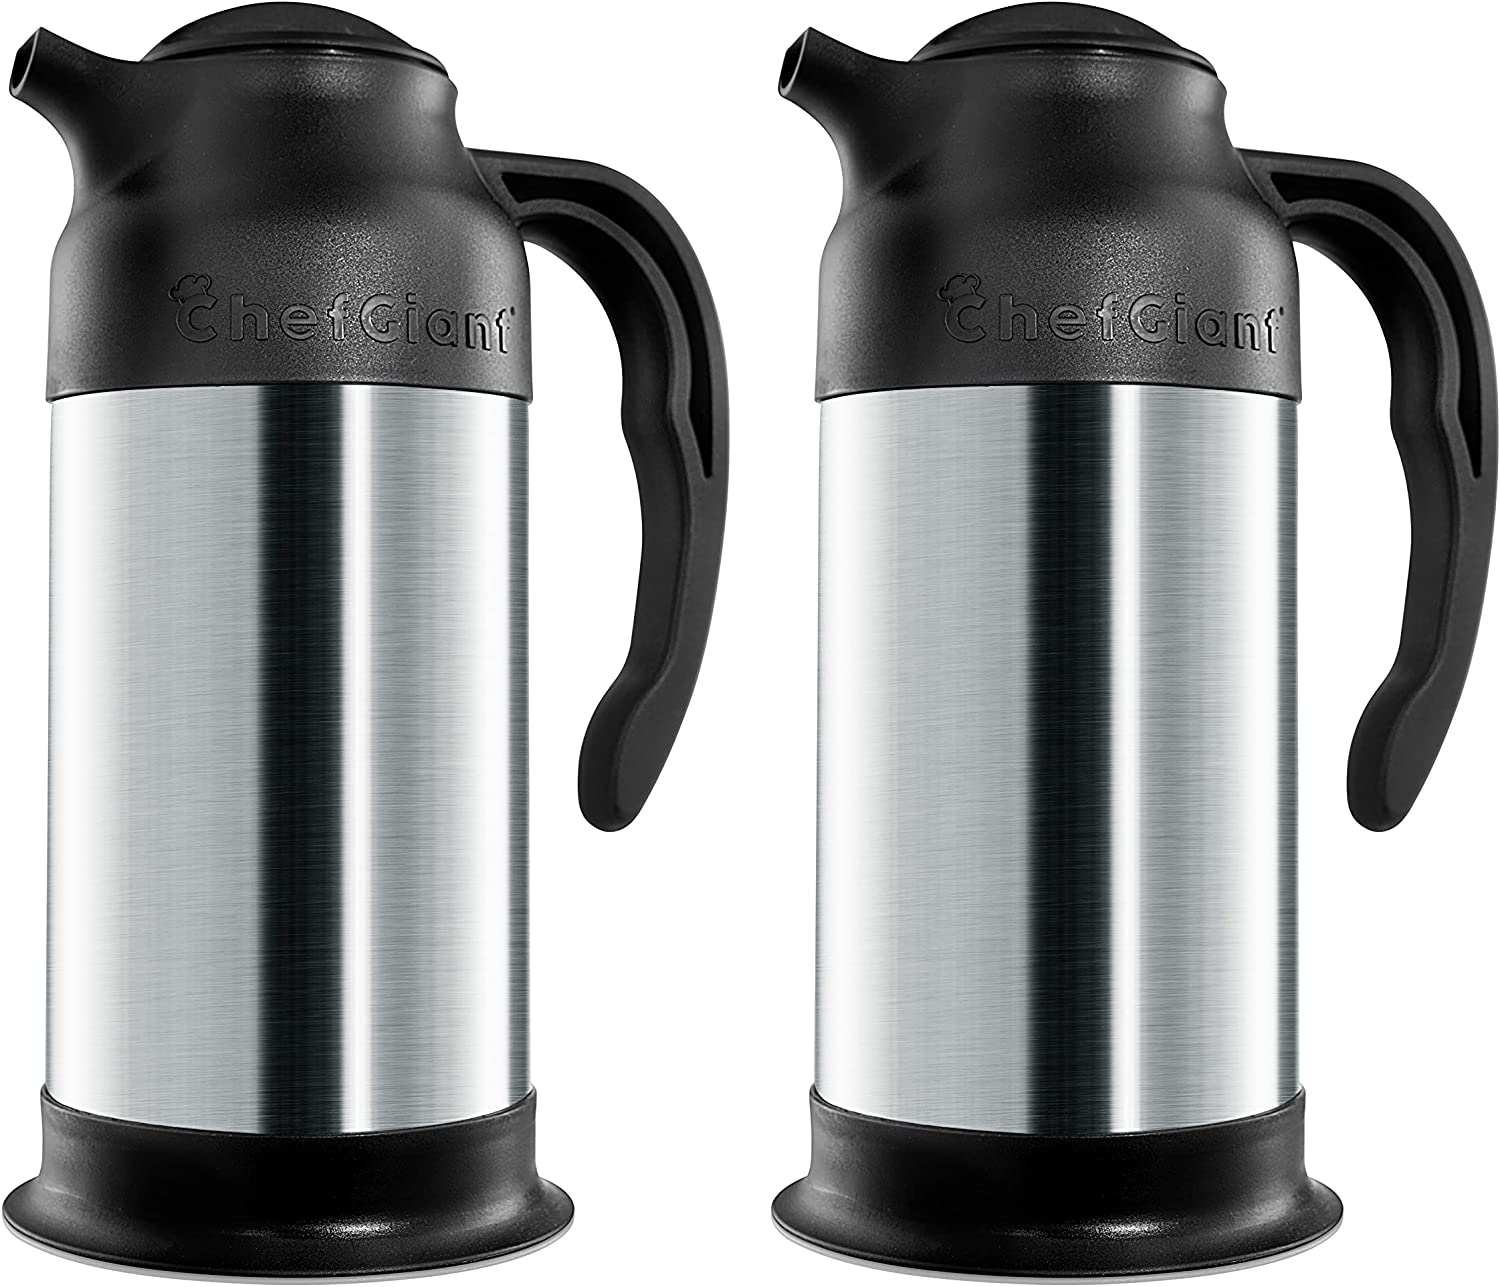 Stainless Steel Thermal New specialty shop product type Coffee Carafe Thermos|Insulated Hot